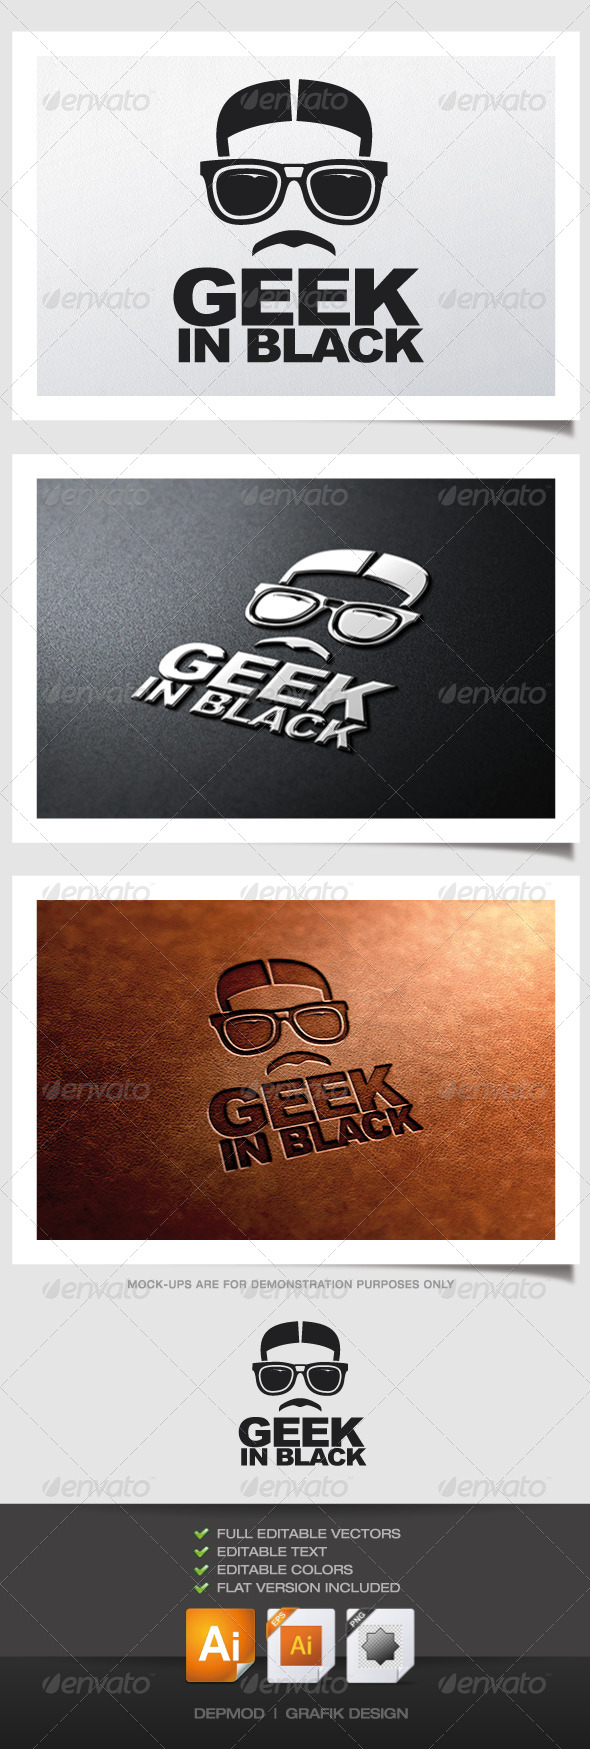 GraphicRiver Geek In Black Logo 4840133